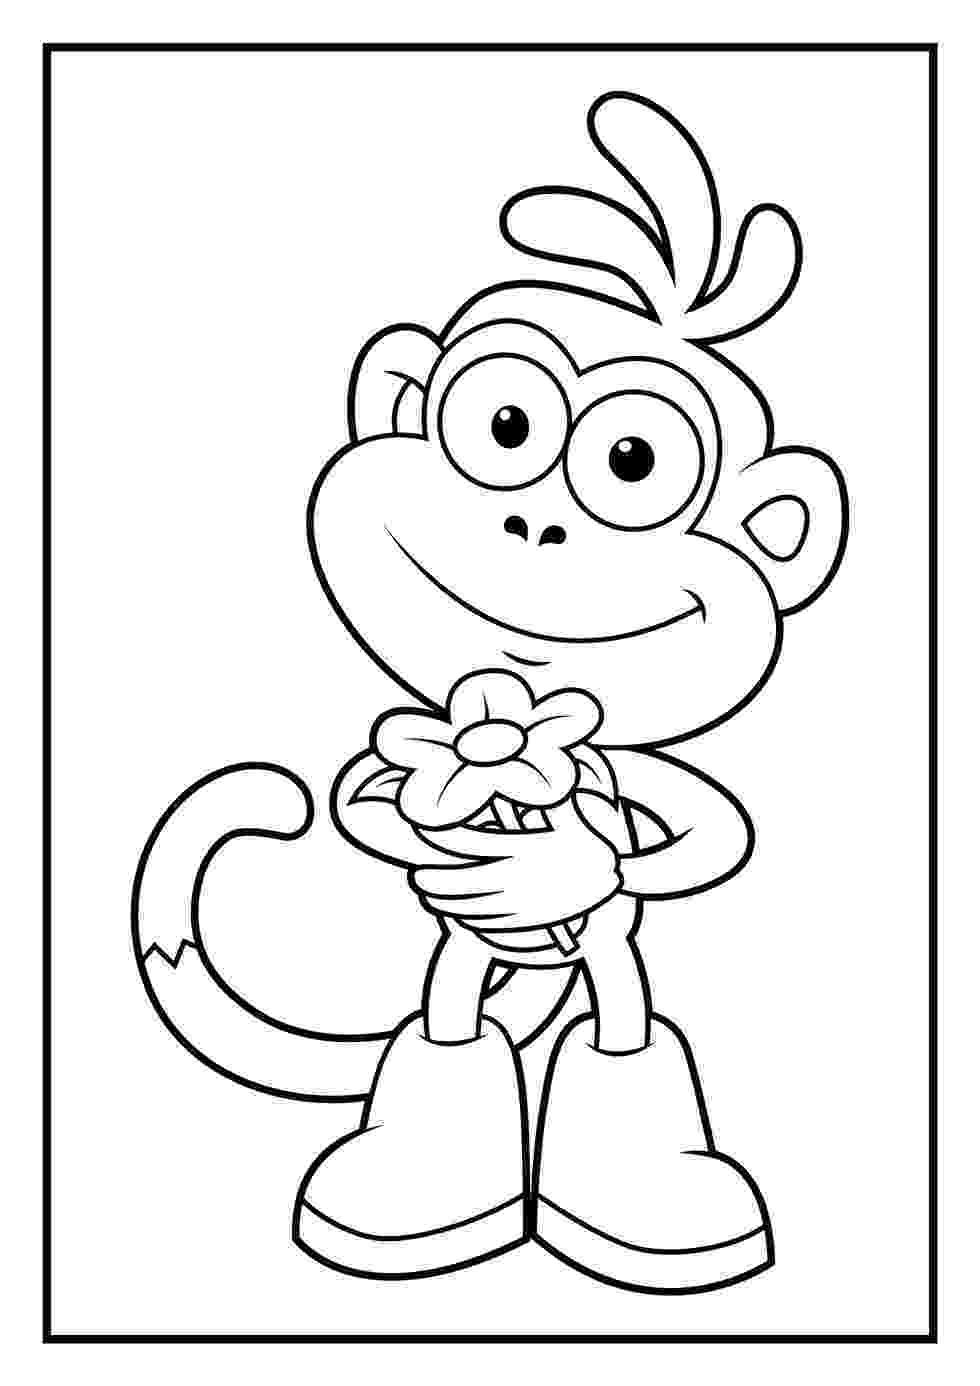 boots coloring page puss in boots coloring pages to download and print for free coloring boots page